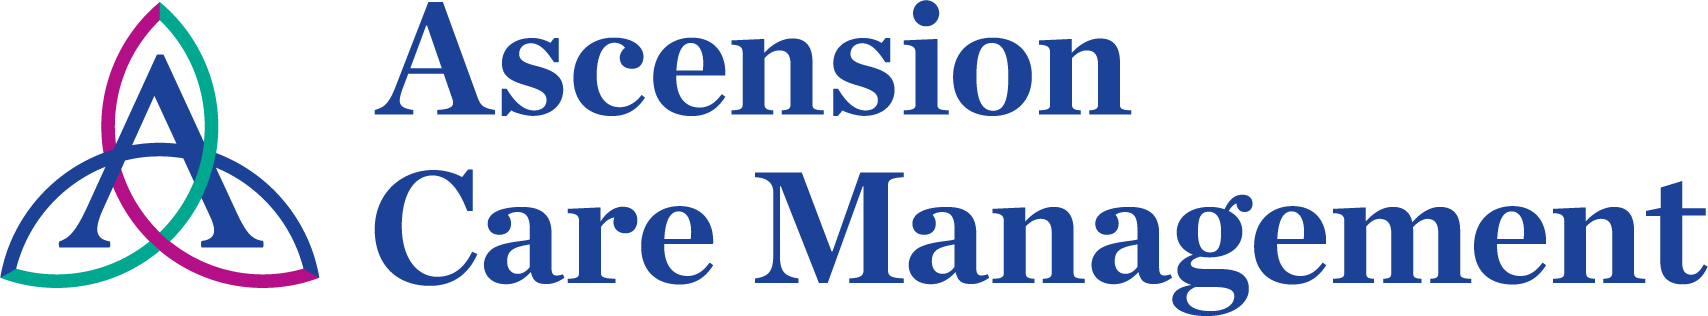 Ascension Care Management subsidiary logo